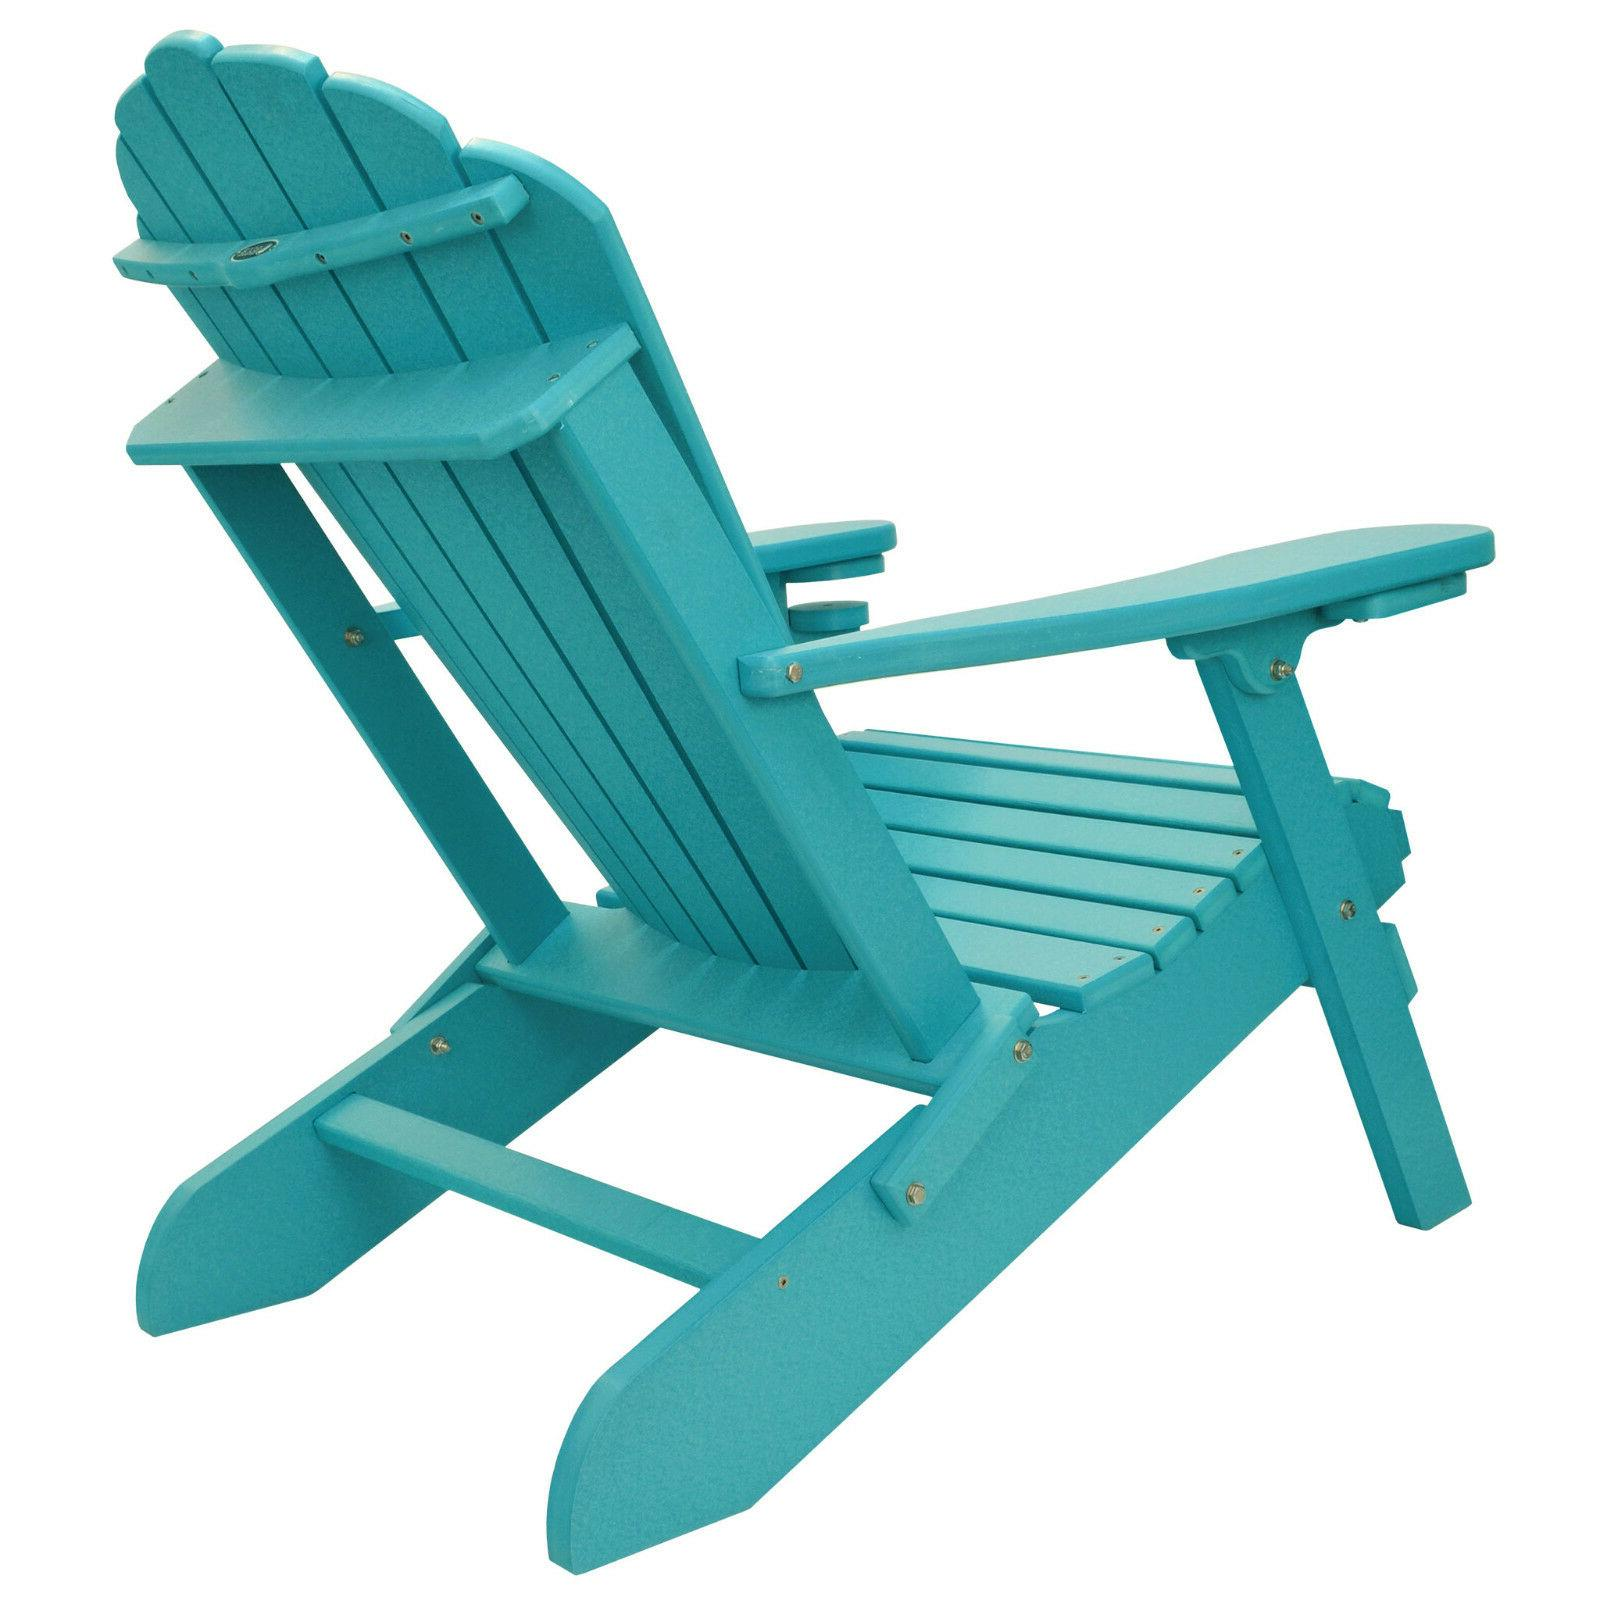 New Banks Deluxe Chair with Harbor Side